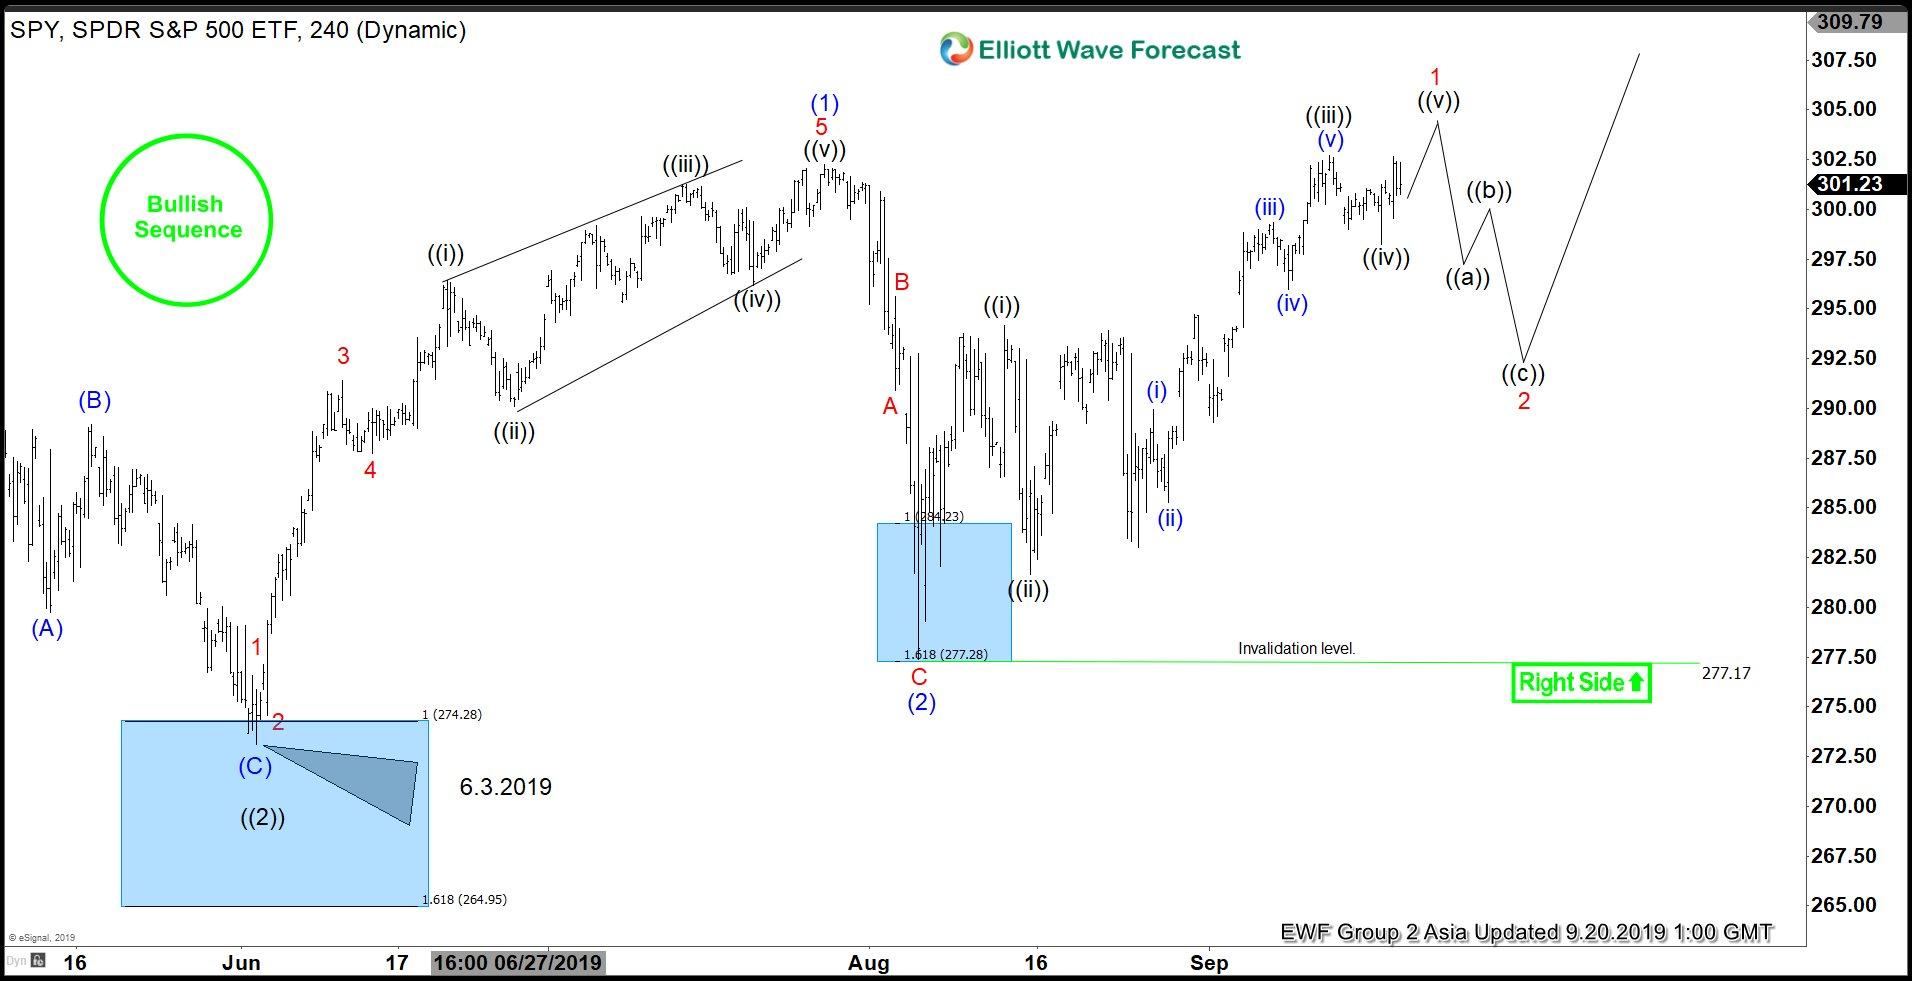 Elliott Wave View: SPY Can See Further Strength in Short Term